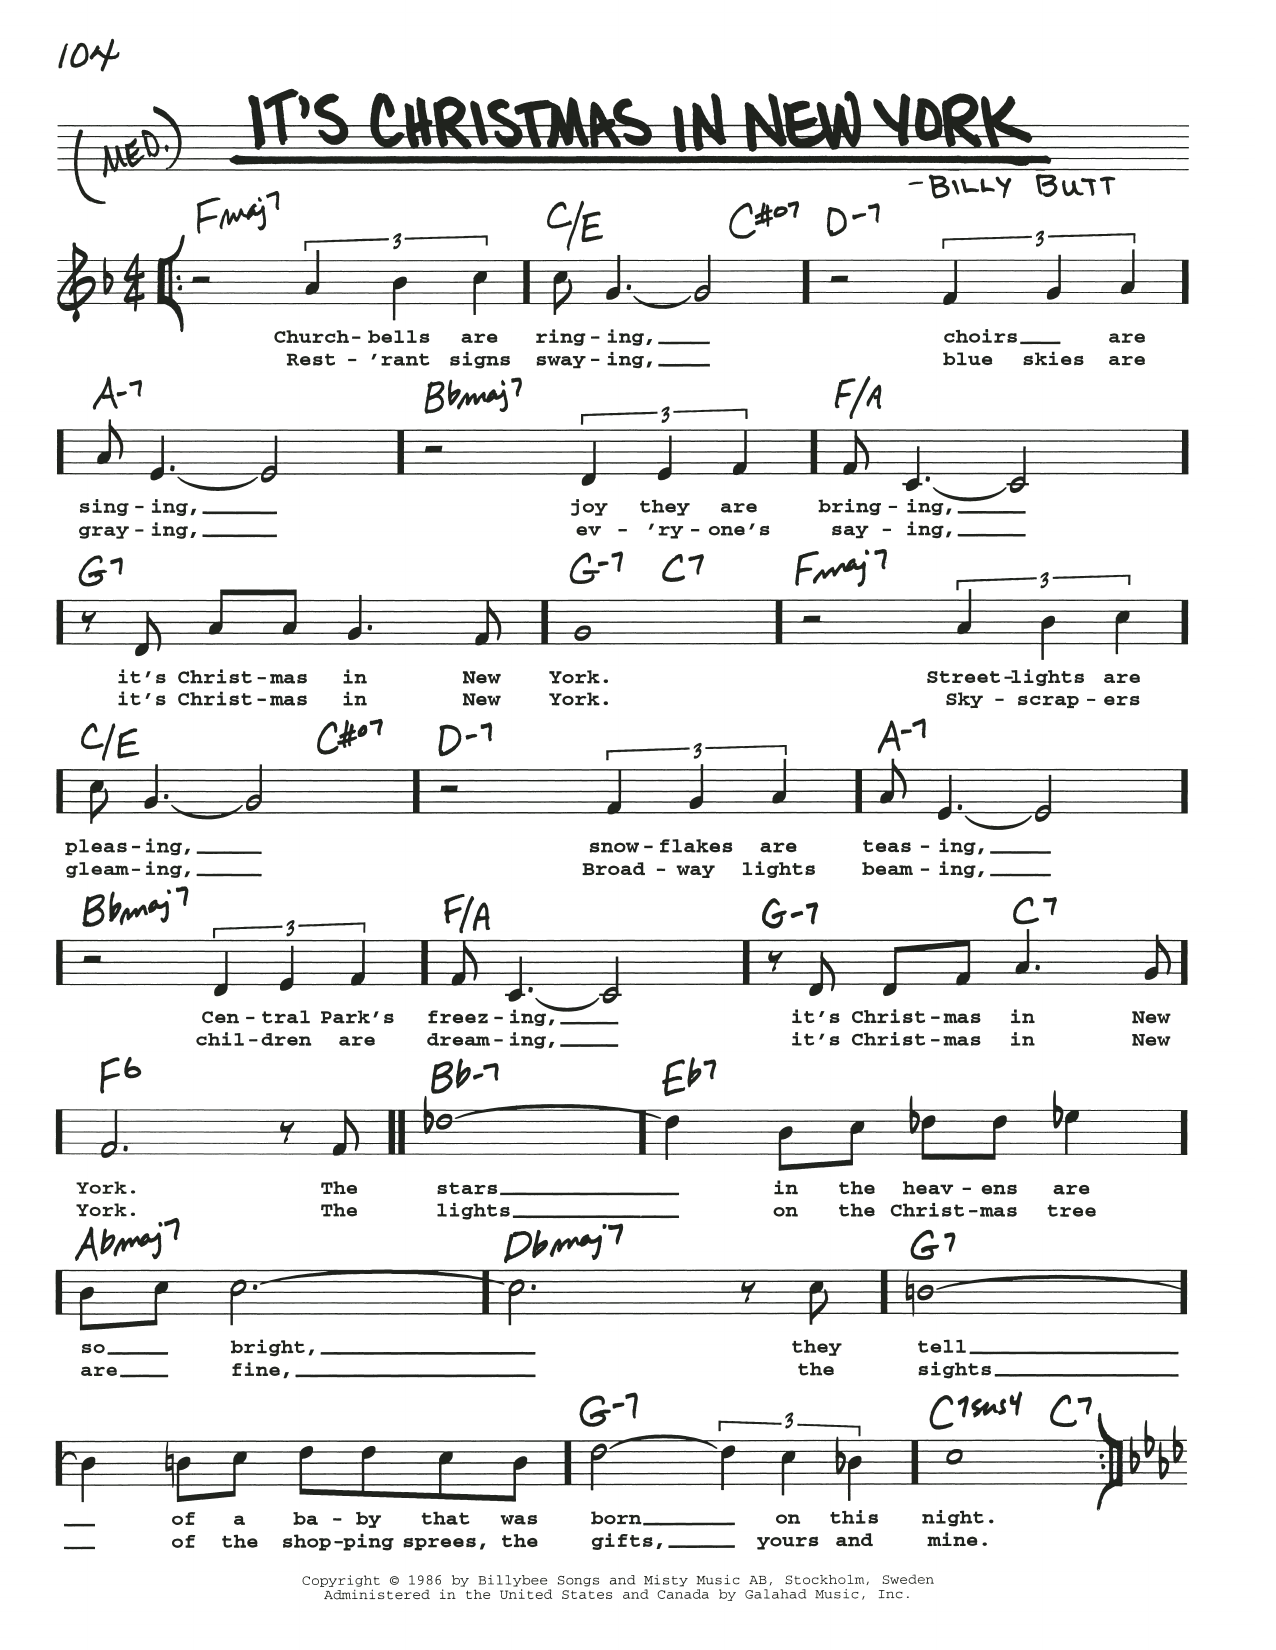 It's Christmas In New York Sheet Music